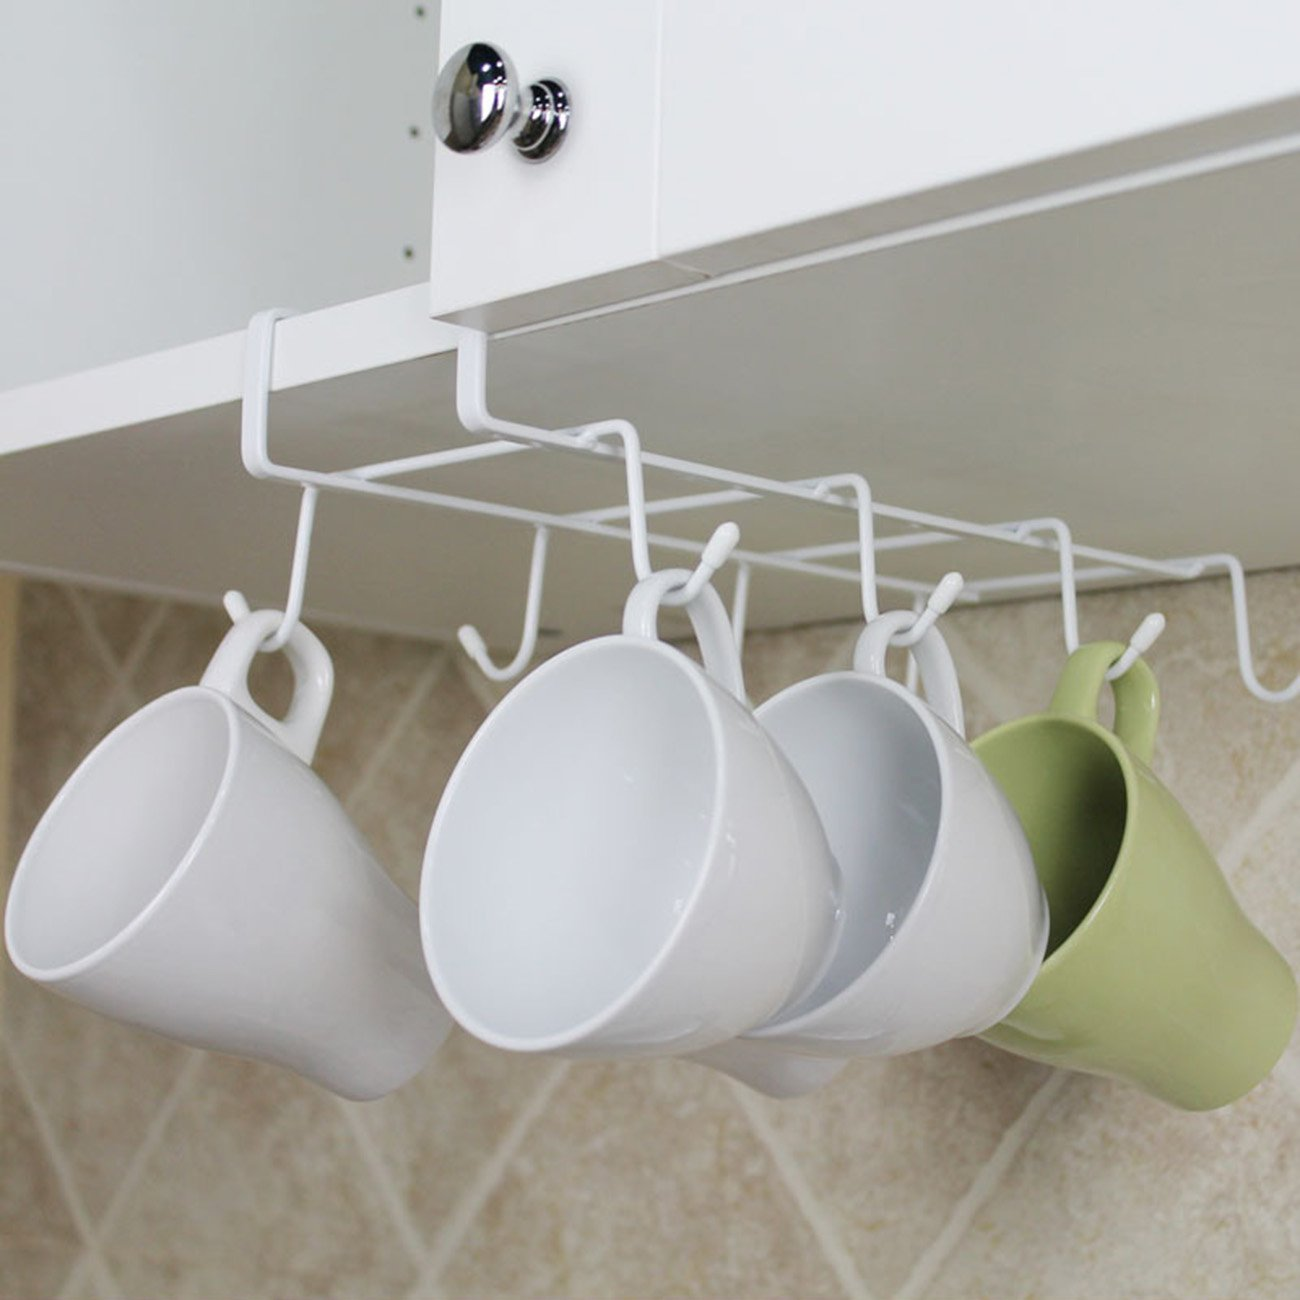 THEE Coffee Cup Wine Cup Hanger Hanging Hooks for Kitchen Tool